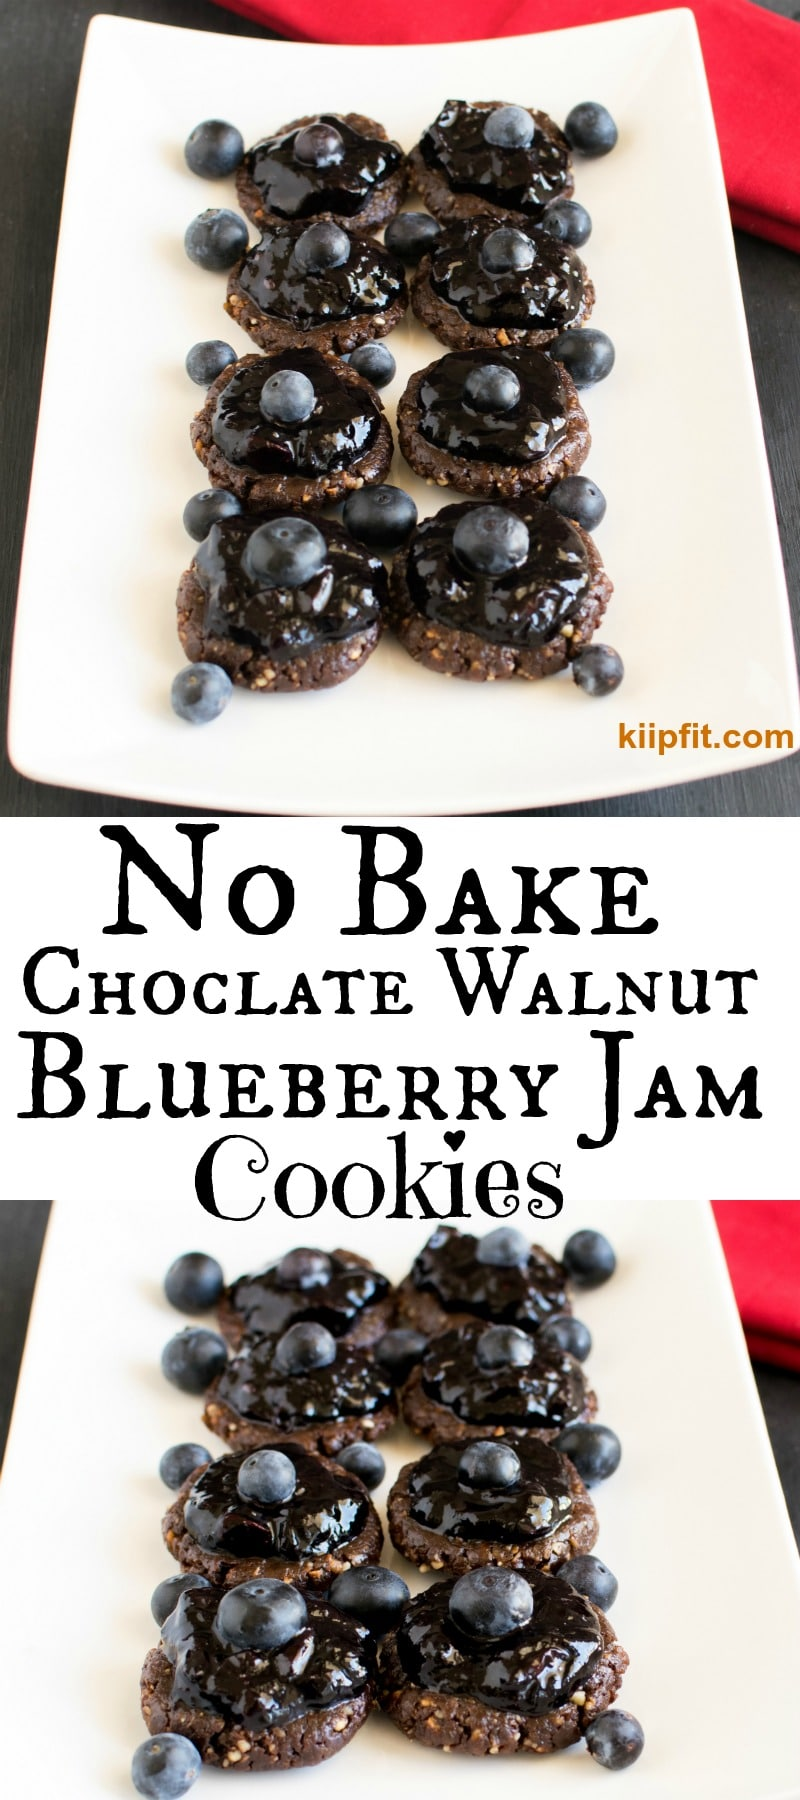 No Bake Chocolate Walnut Cookies with Blueberry Jam Frosting melts in mouth and gives you a feeling of being in heaven with its variey of flavors. Only 7 and healthy ingredients are used and these cookies are seriously addictive [ vegan + GF + Paleo ] kiipfit.com